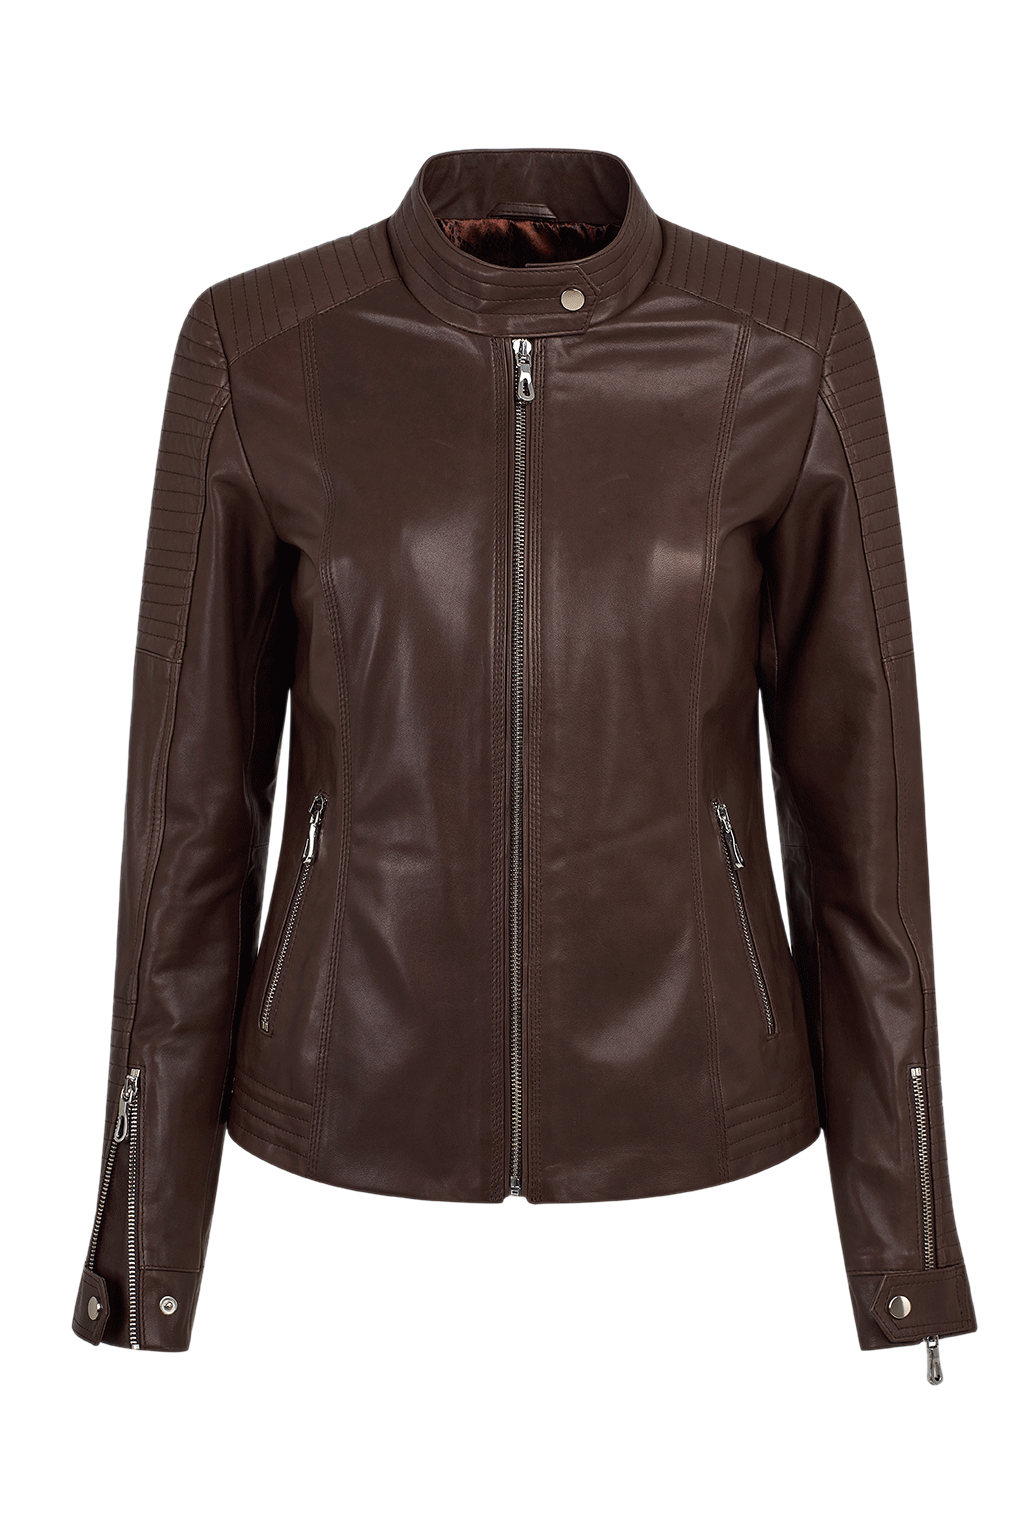 Women's Quilted Leather Jacket - Dark Brown